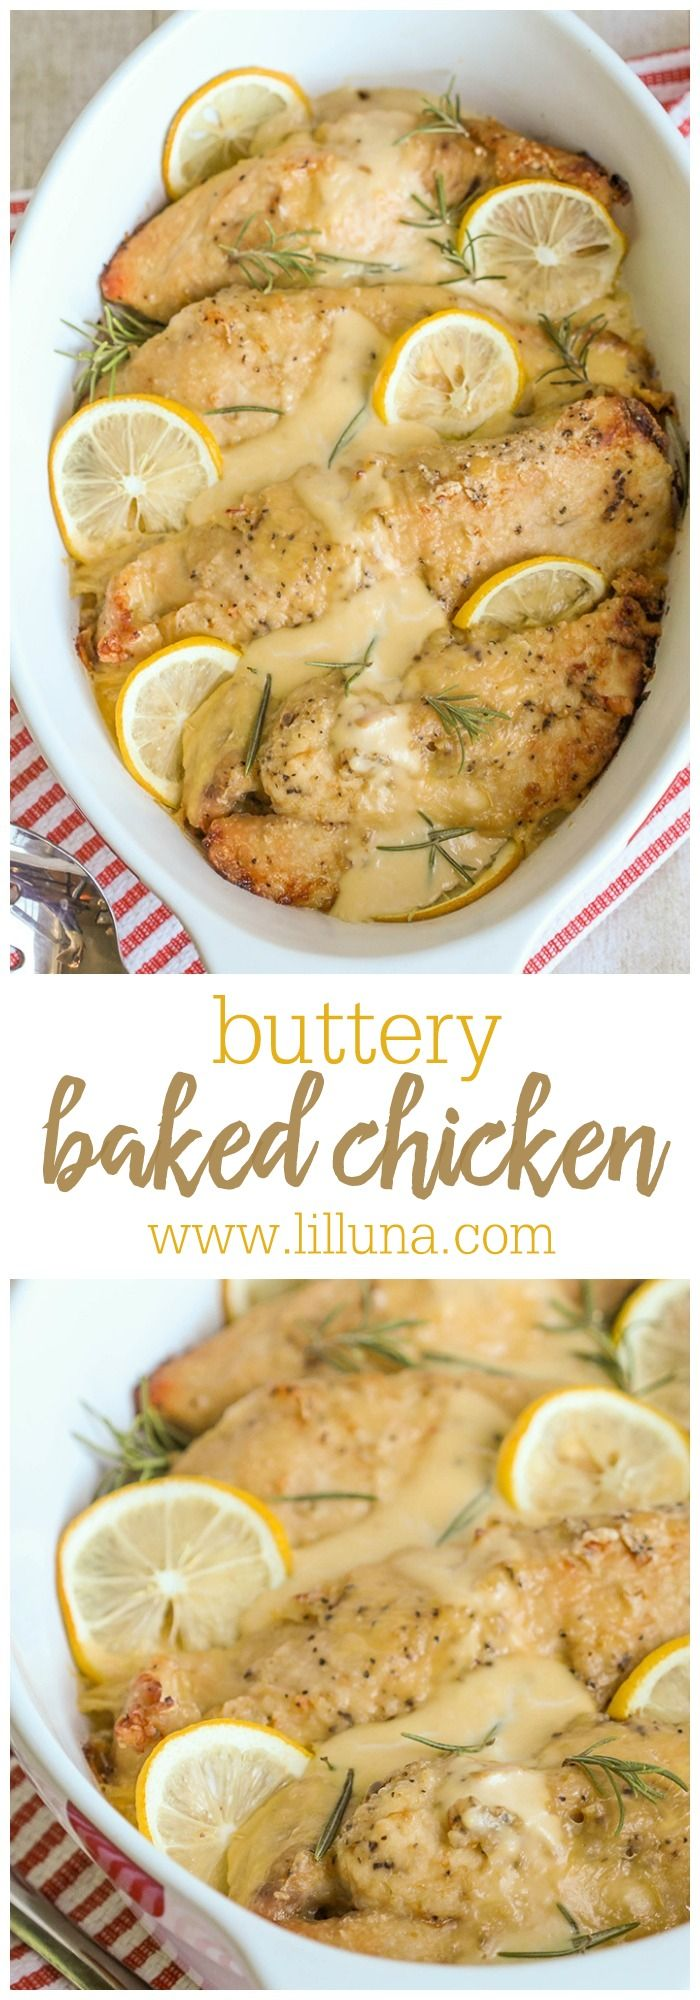 Delicious Buttery Baked Chicken - another easy and yummy dinner recipe! { lilluna.com } Chicken cooked with evaporated milk, butter, and cream of chicken soup for a delicious and creamy dish!